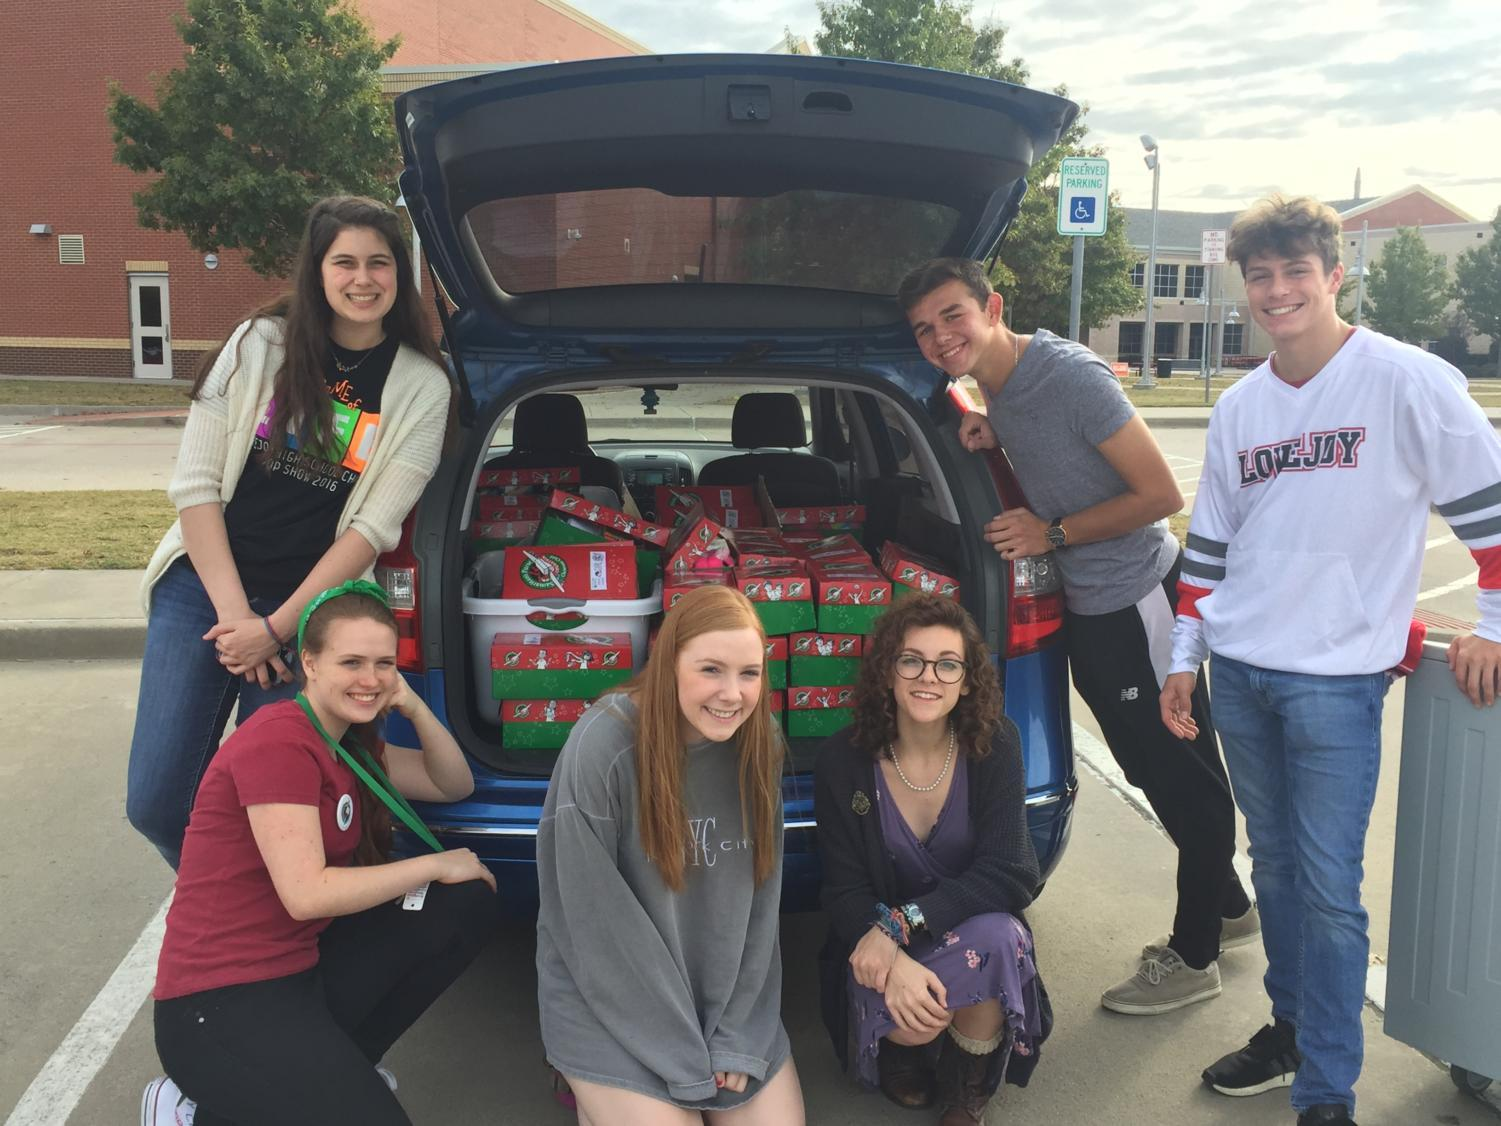 Senior Mandy Rickett, second to the left, and friends who helped pack the boxes packed the gifts in the car to bring them to Operation Christmas Child headquarters. From there they will be given to children in need of christmas gifts.